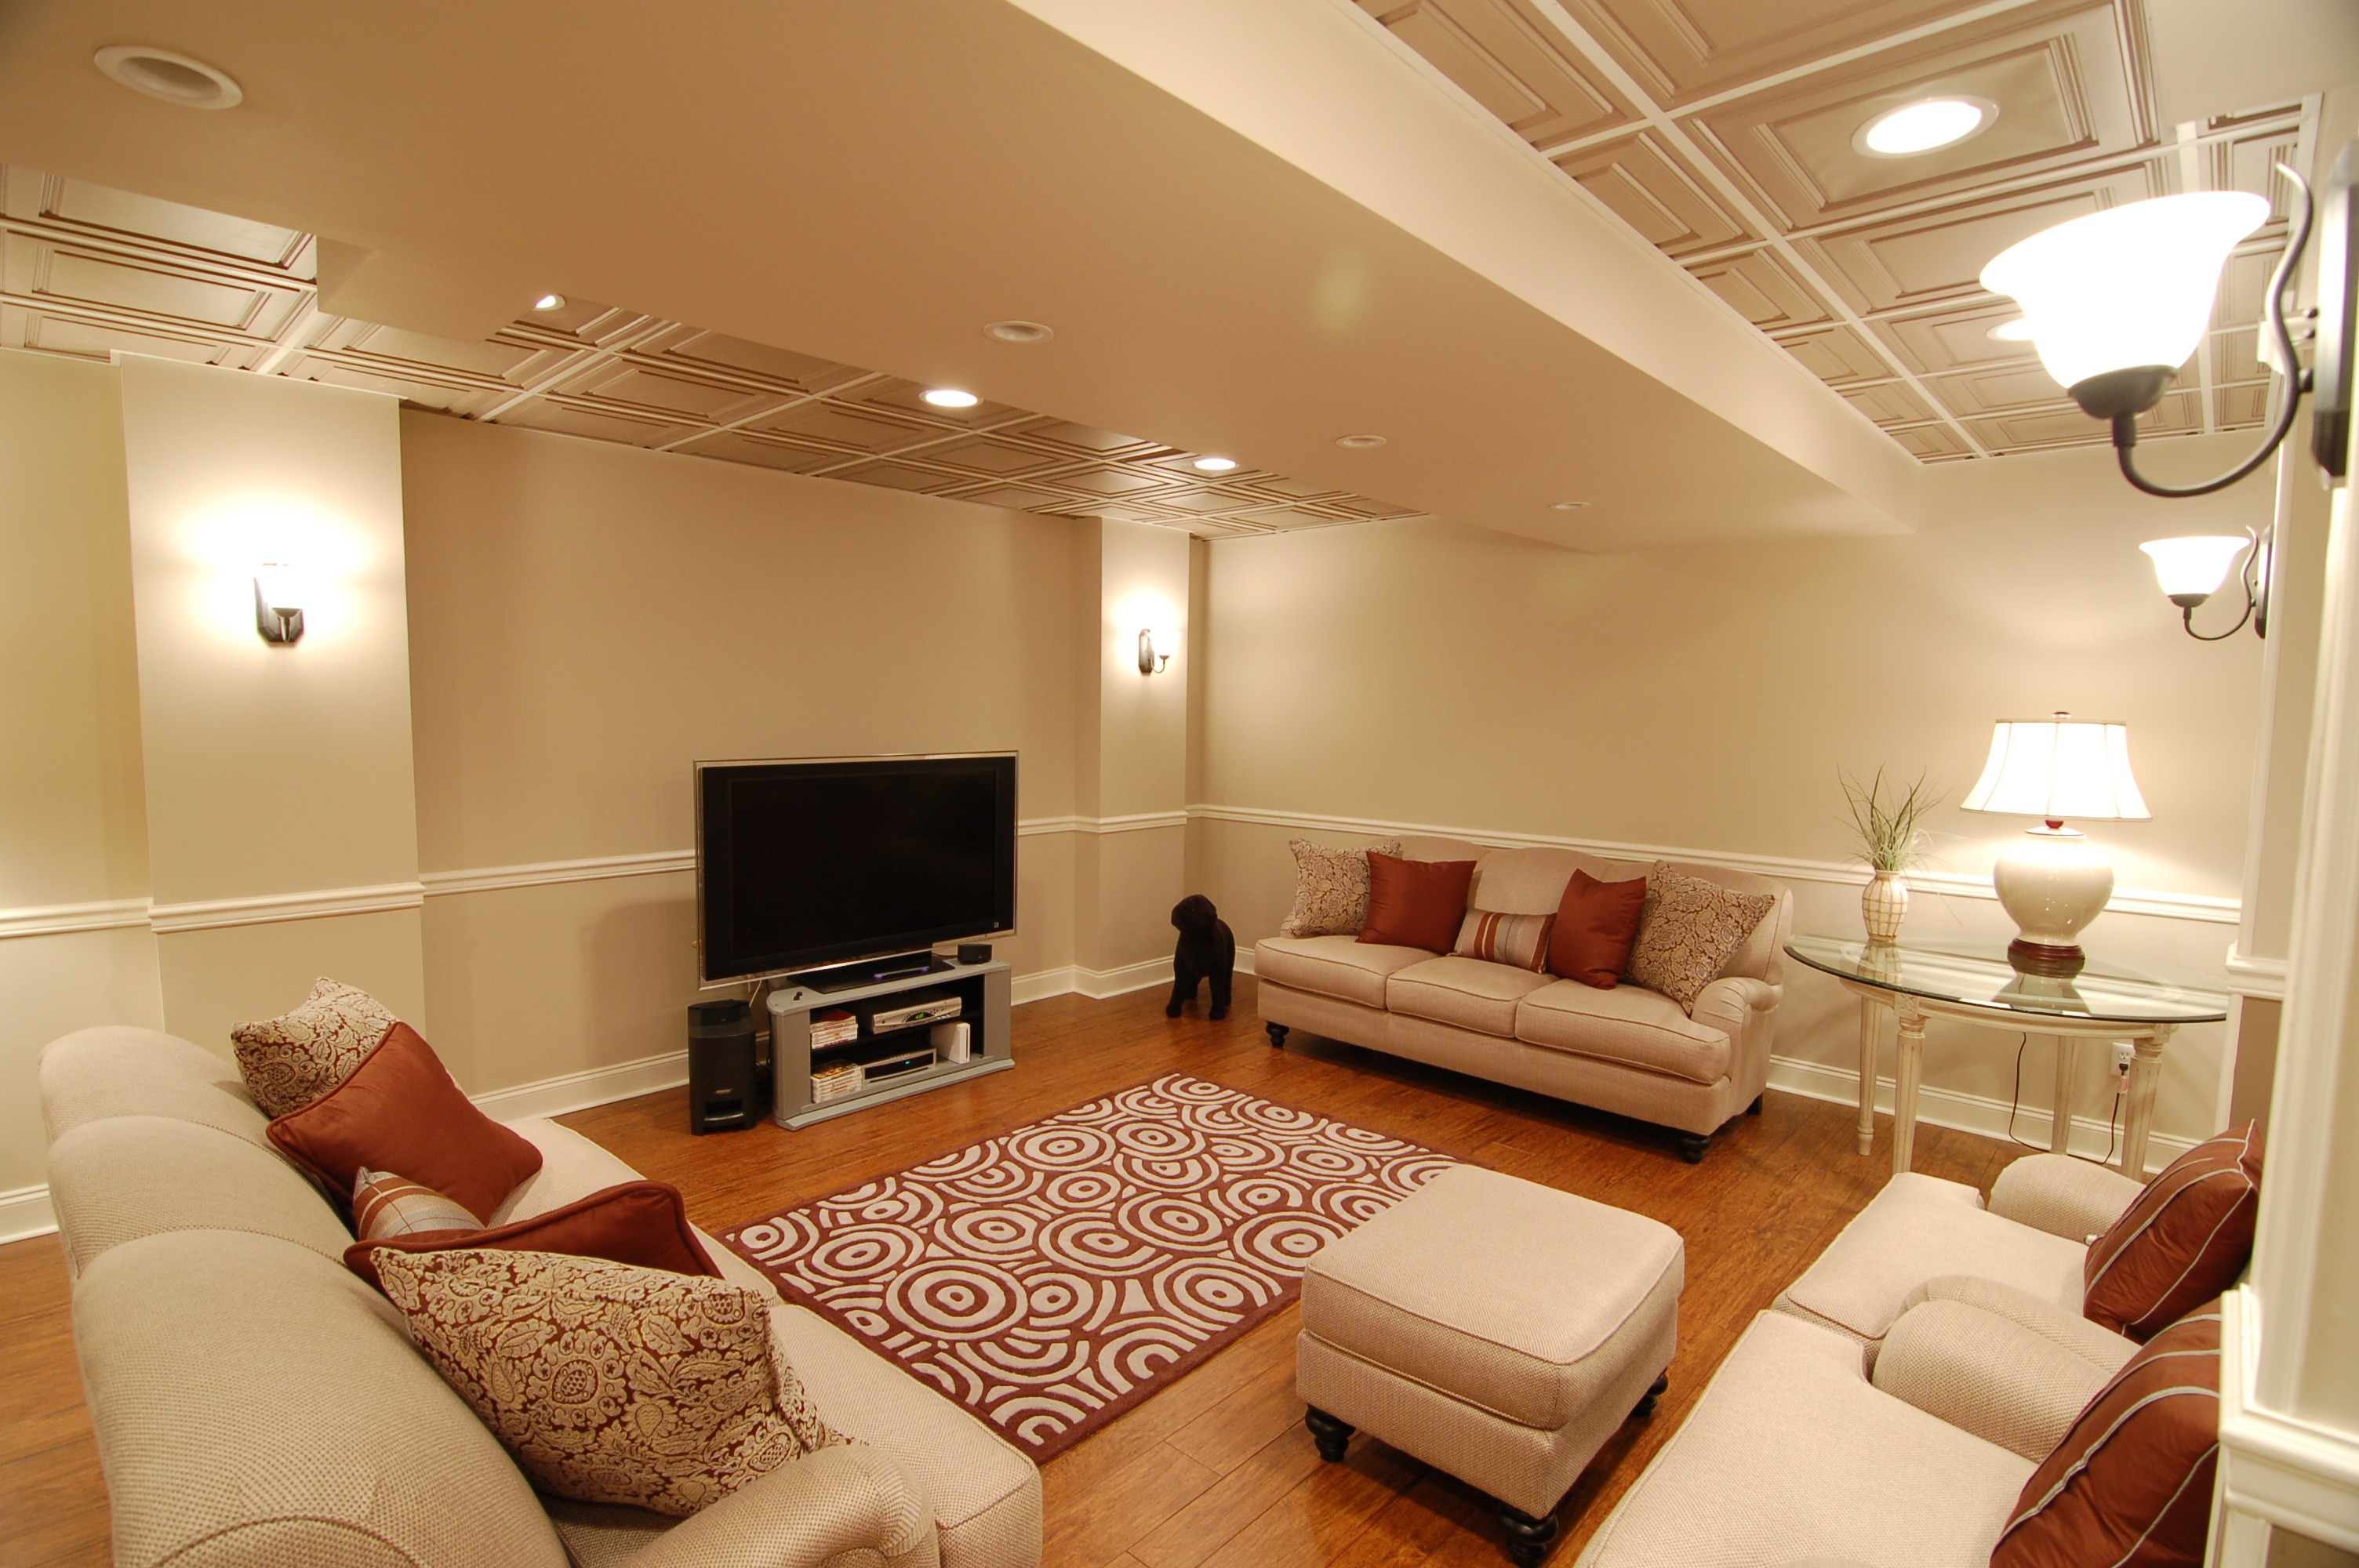 Basement Remodeling Nj Nj Basement Remodeling Ideas For Your Dream Basement